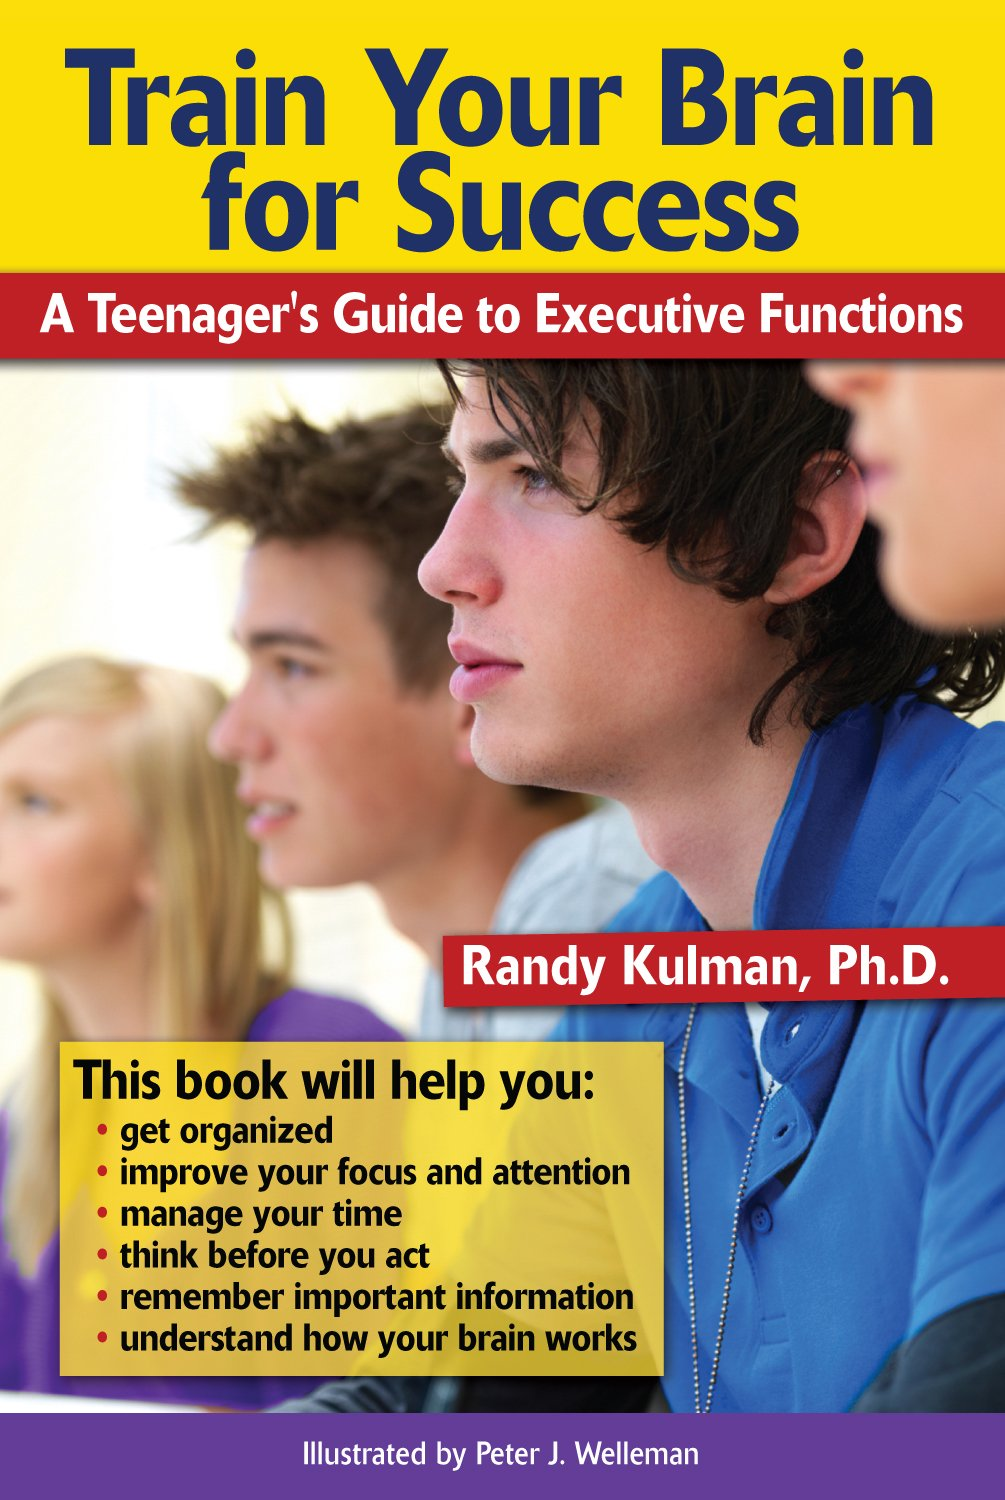 The Adolescent Brain Why Executive >> Train Your Brain For Success A Teenager S Guide To Executive